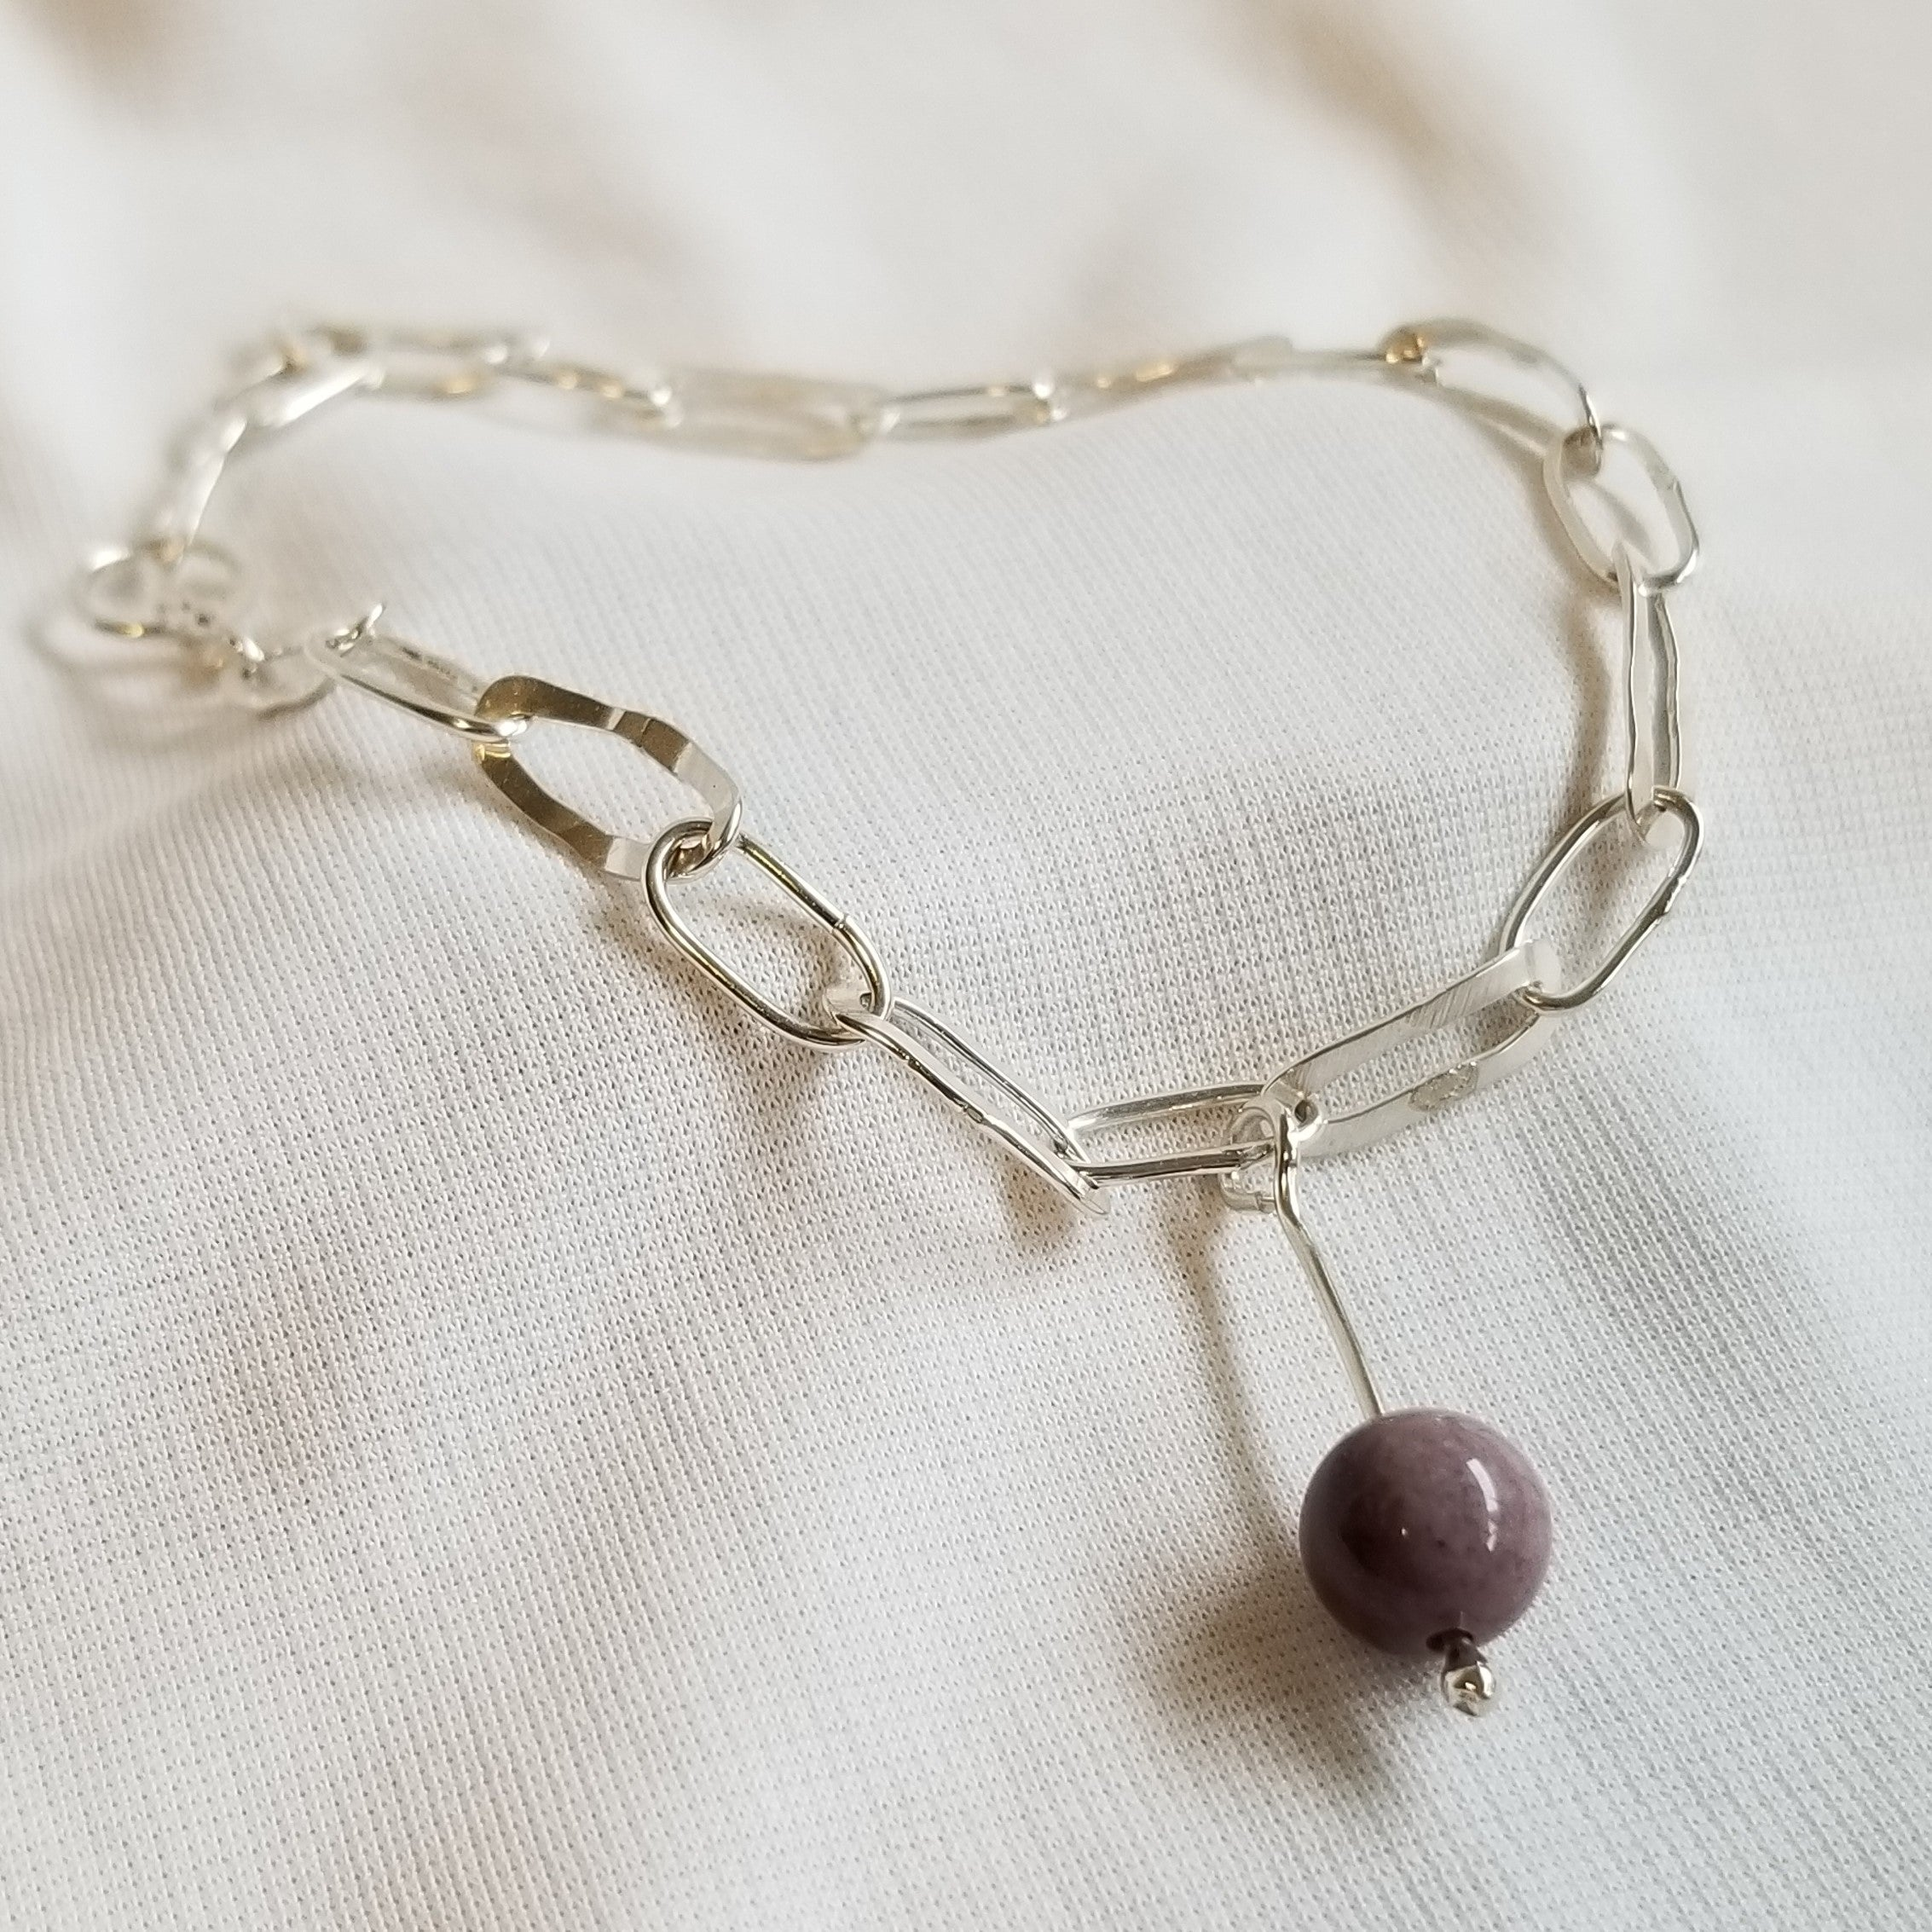 Link bracelet with purple mookaite jasper drop